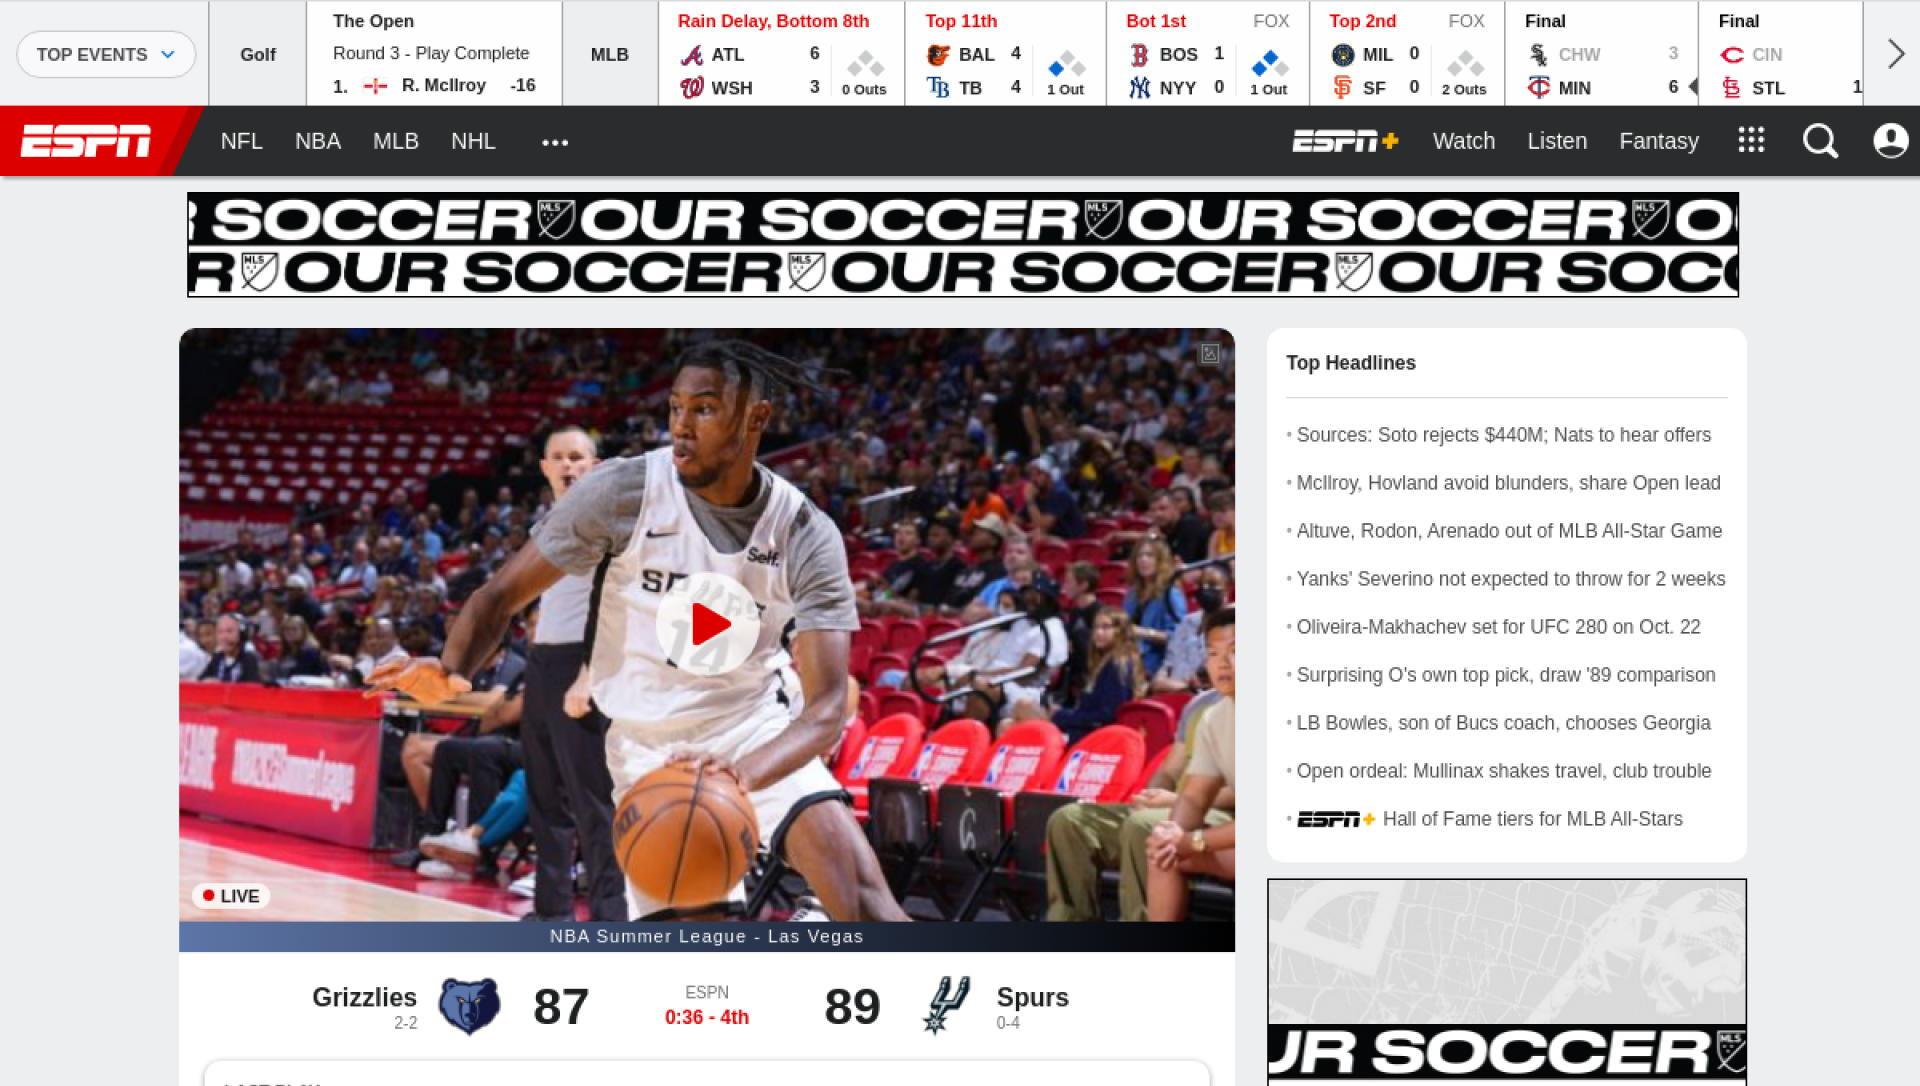 Screenshot of espn.com on desktop